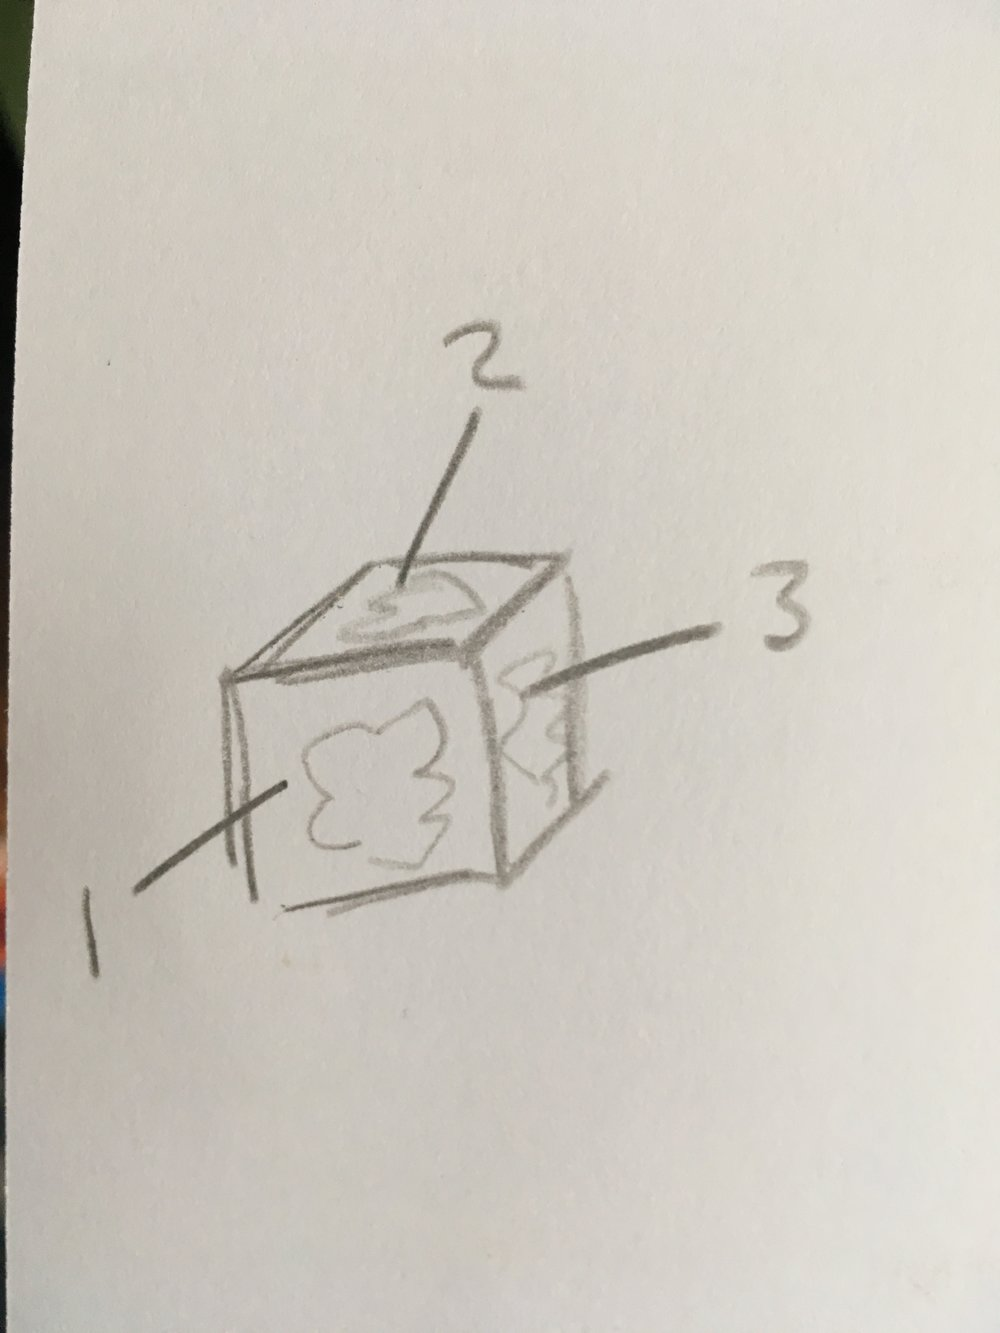 Draft 1 - This cube would utilize different images from multiple films in its different faces.